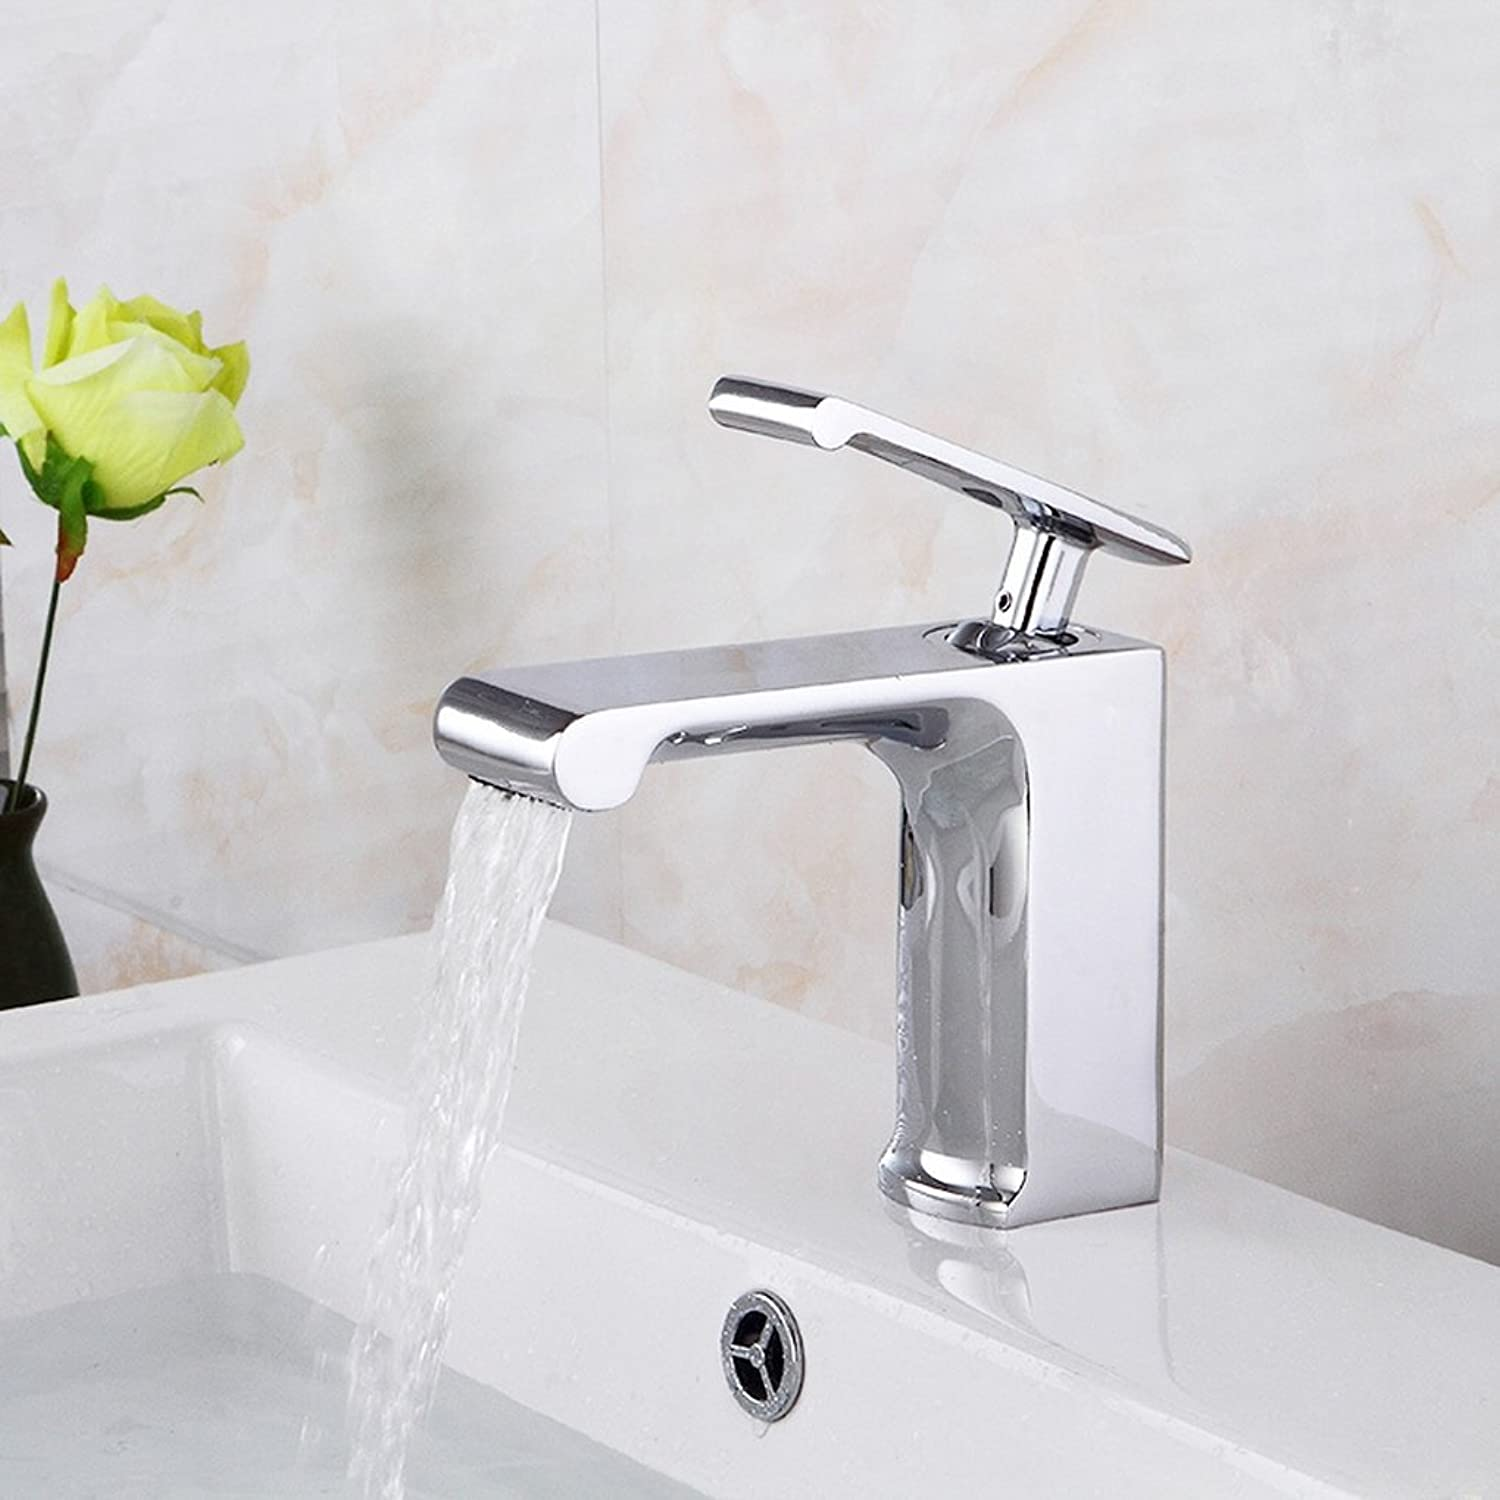 Bathroom Sink Faucet In Modern Style Single Handle Waterfall Bathroom Sink Faucet